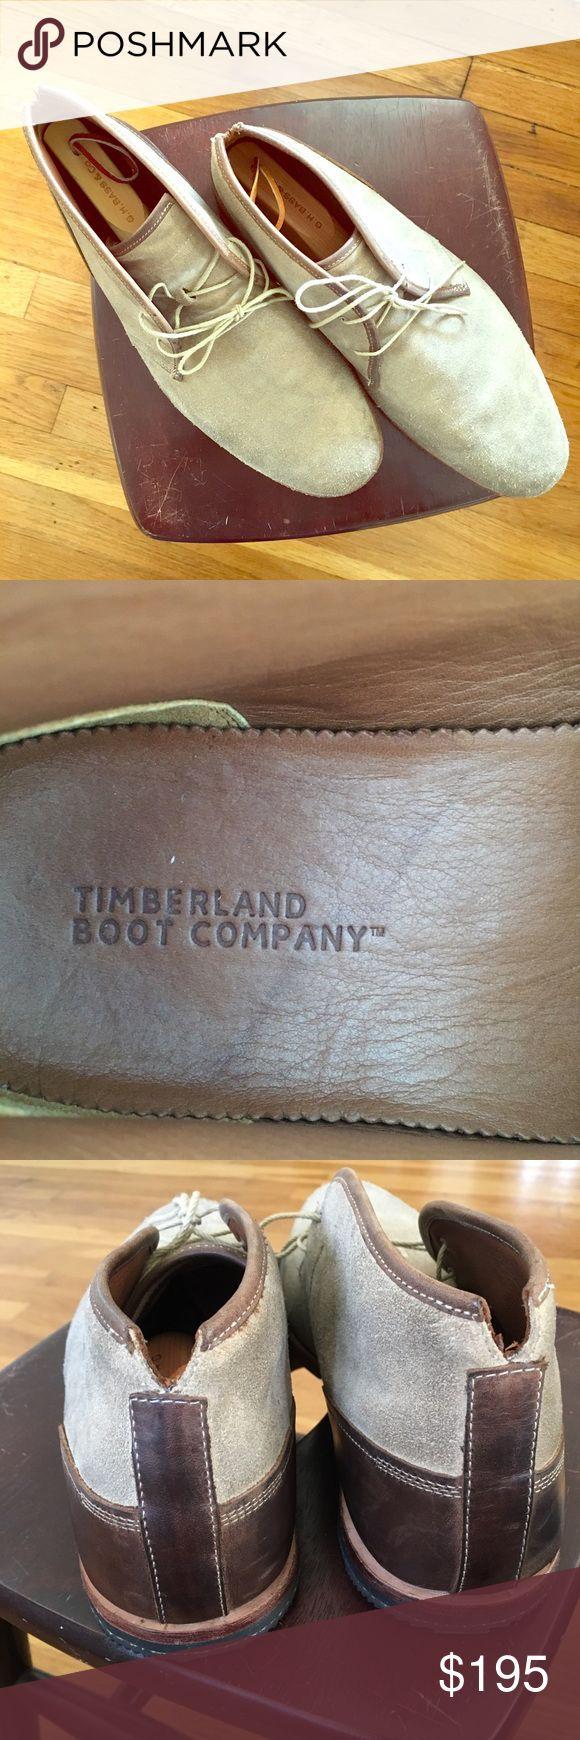 Timberland Wodehouse Lost History Boot 10 Timberland Boot Company Wodehouse Lost History Boot Style#: 4127R Brown Suede Size: 10US / Supple, burnished suede shapes a minimally pieced chukka boot that offers an exceptionally comfortable fit with a roomy toe box, well-cushioned insole and a flexible, lightweight sole. The notched heel is wrapped with sleek leather for on-trend, two-tone styling.Removable insole Leather upper/leather and textile lining/leather and rubber sole *shoe box not…